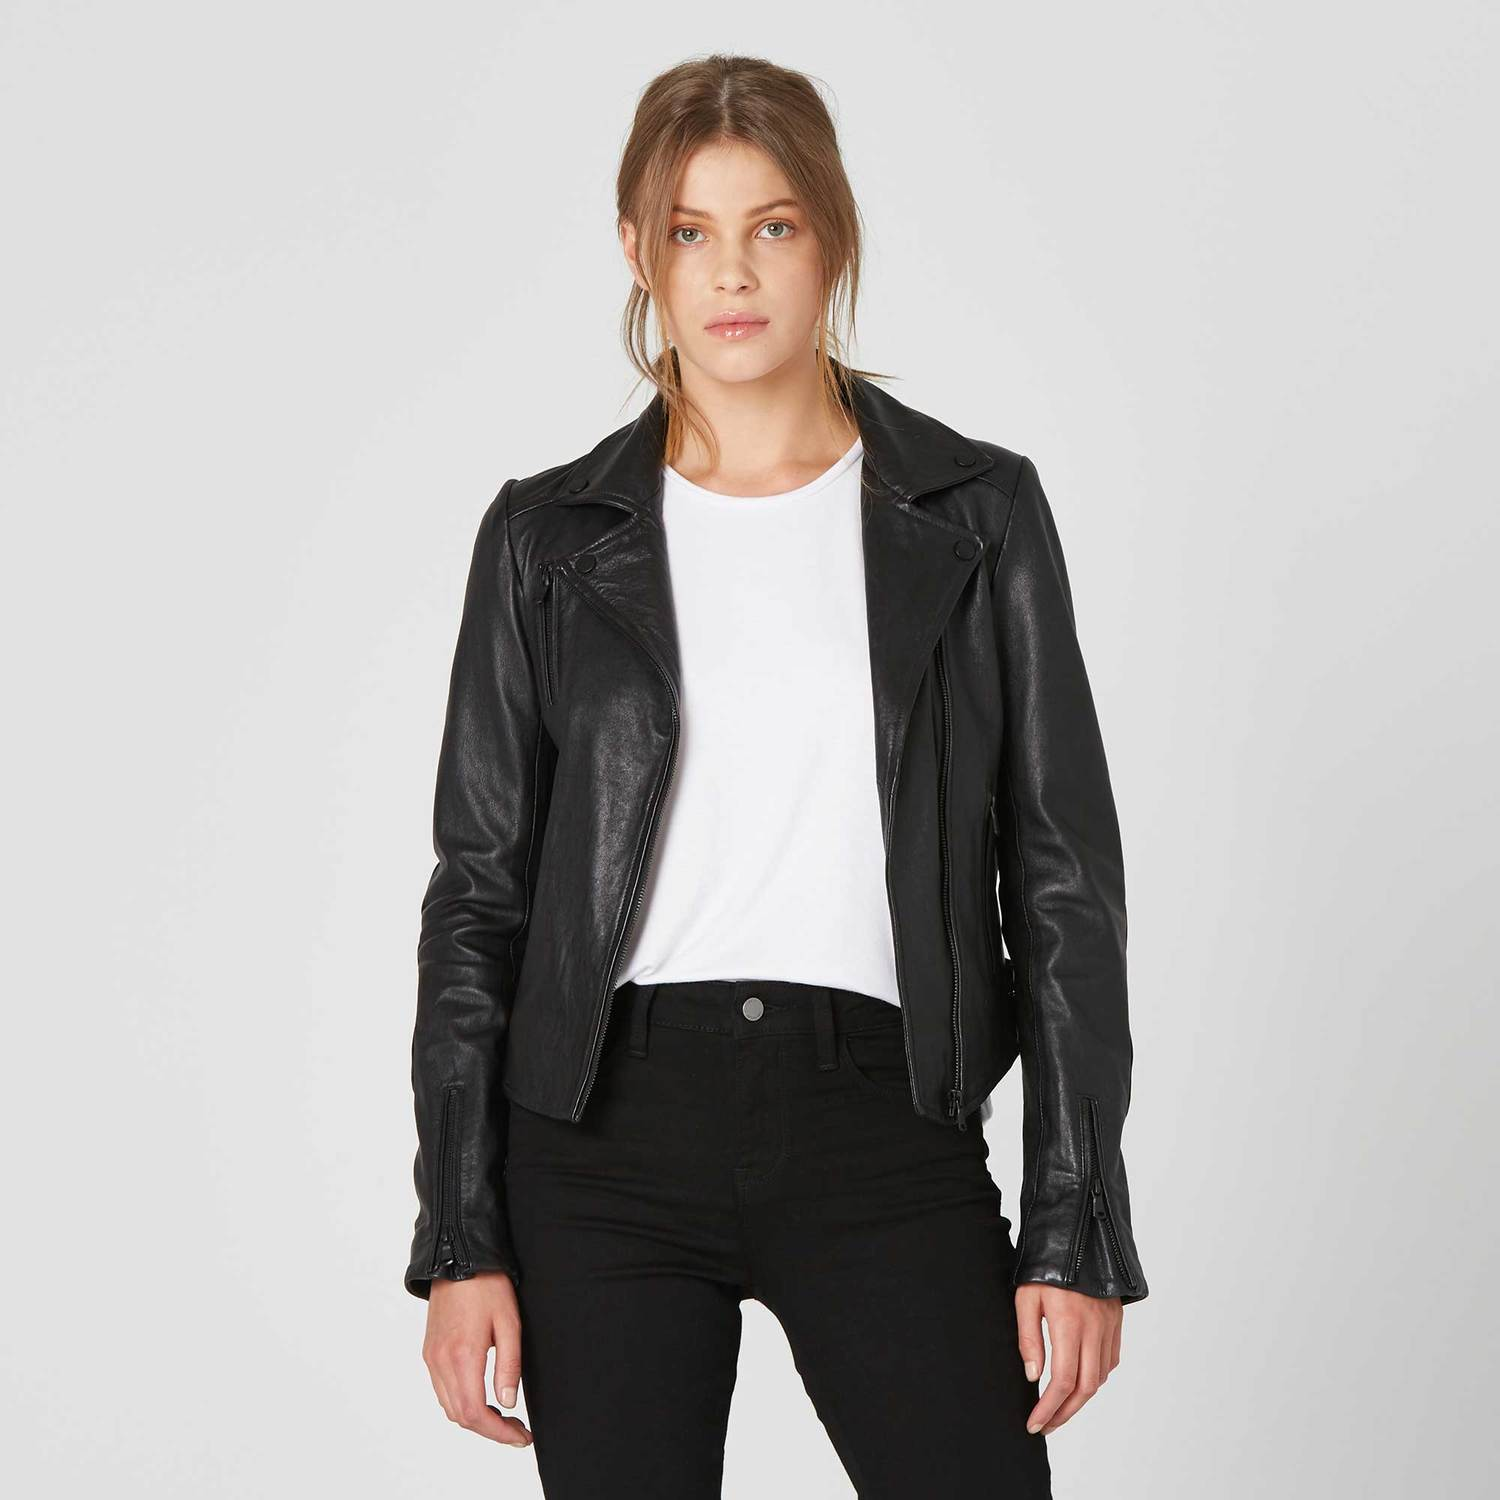 Womens Leather Moto Jacket With Black Hardware 300 Dstld